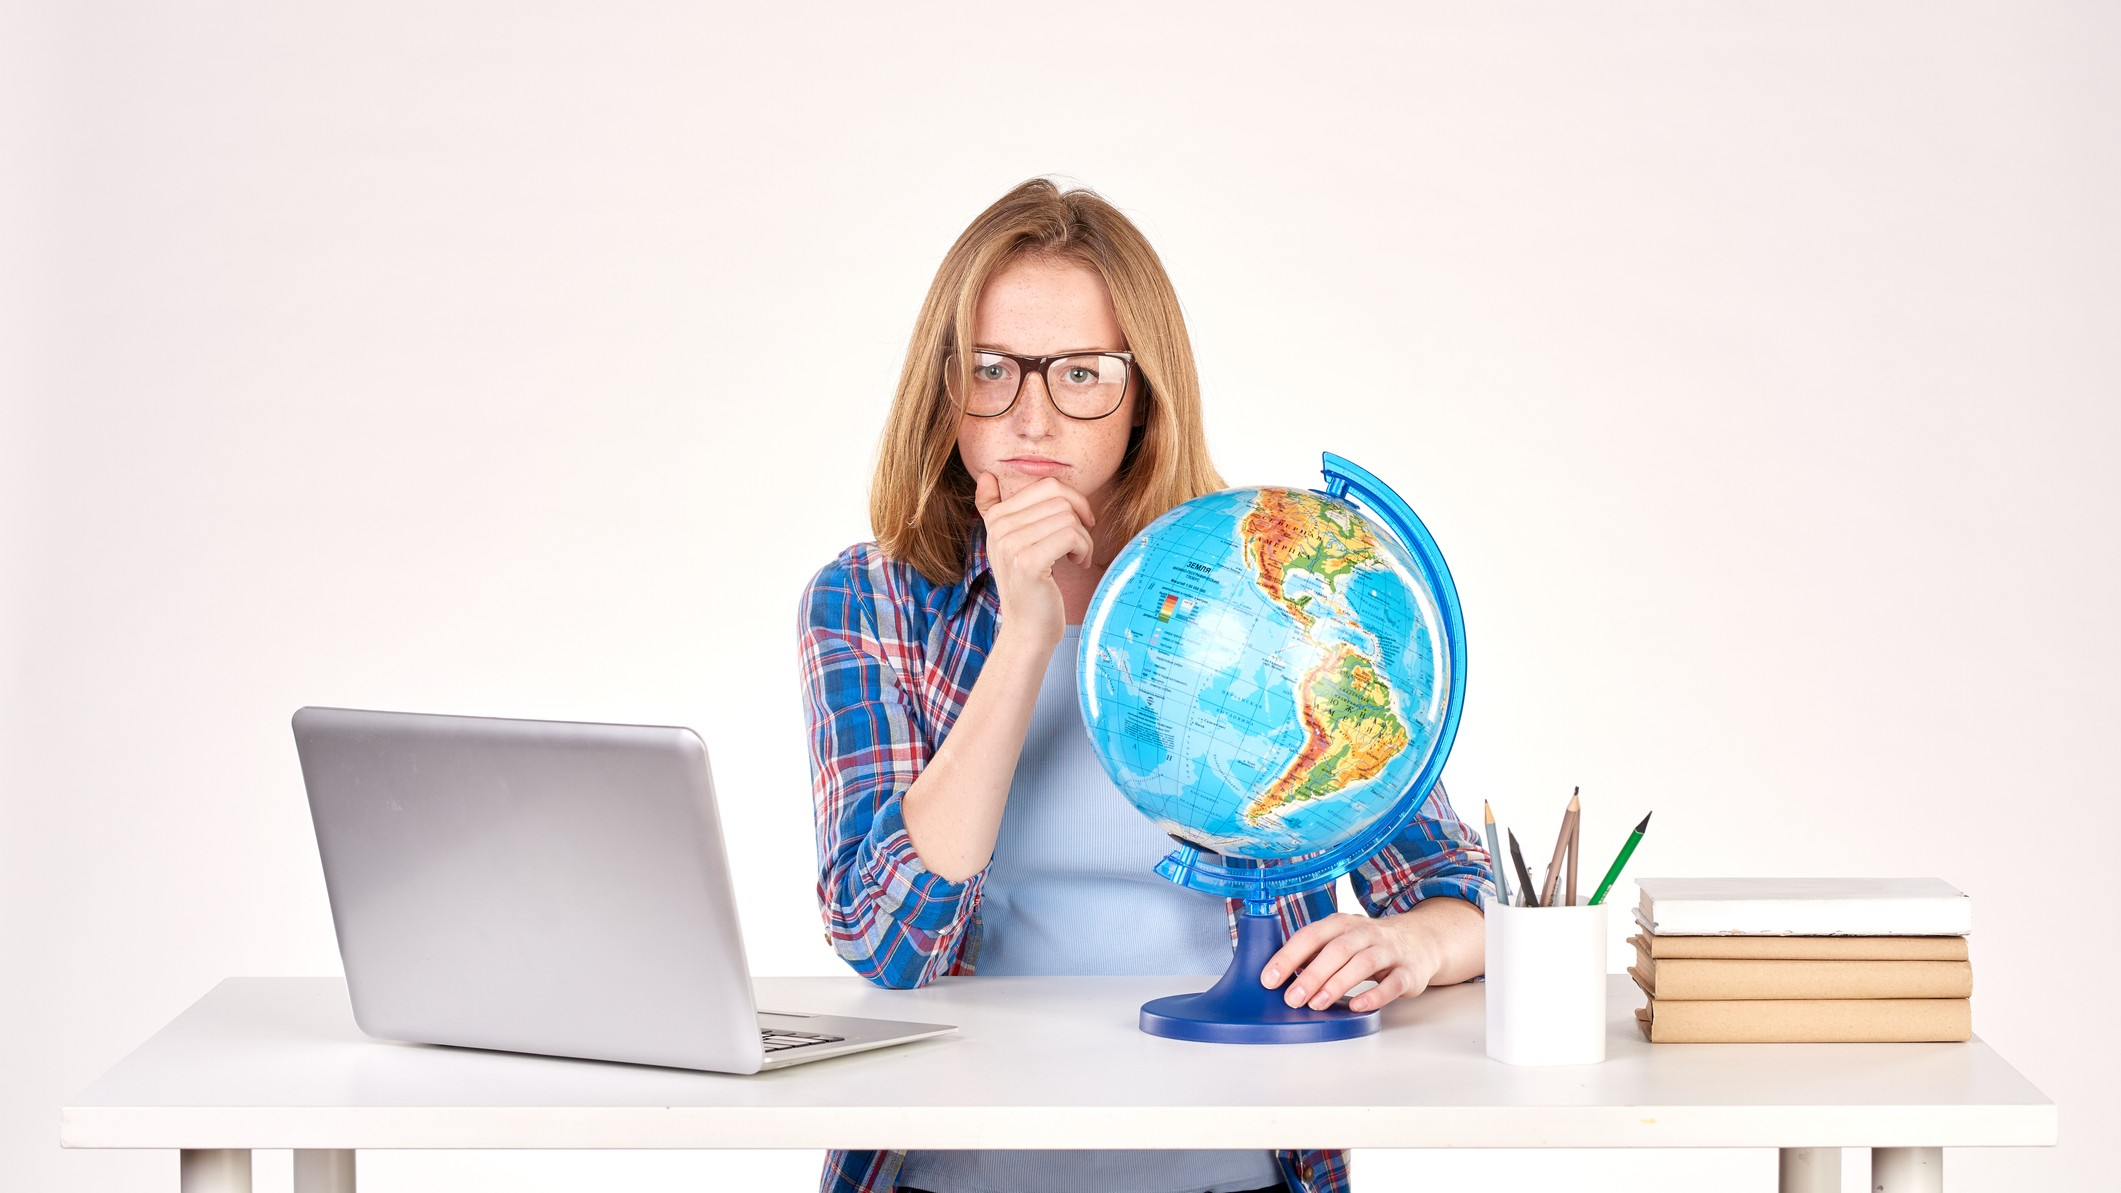 a woman sits at her desk looking puzzled and disappointed with her hand to her chin while an open laptop computer sits on one side of her and her hand is around the base of a globe of the world on the other side of her.